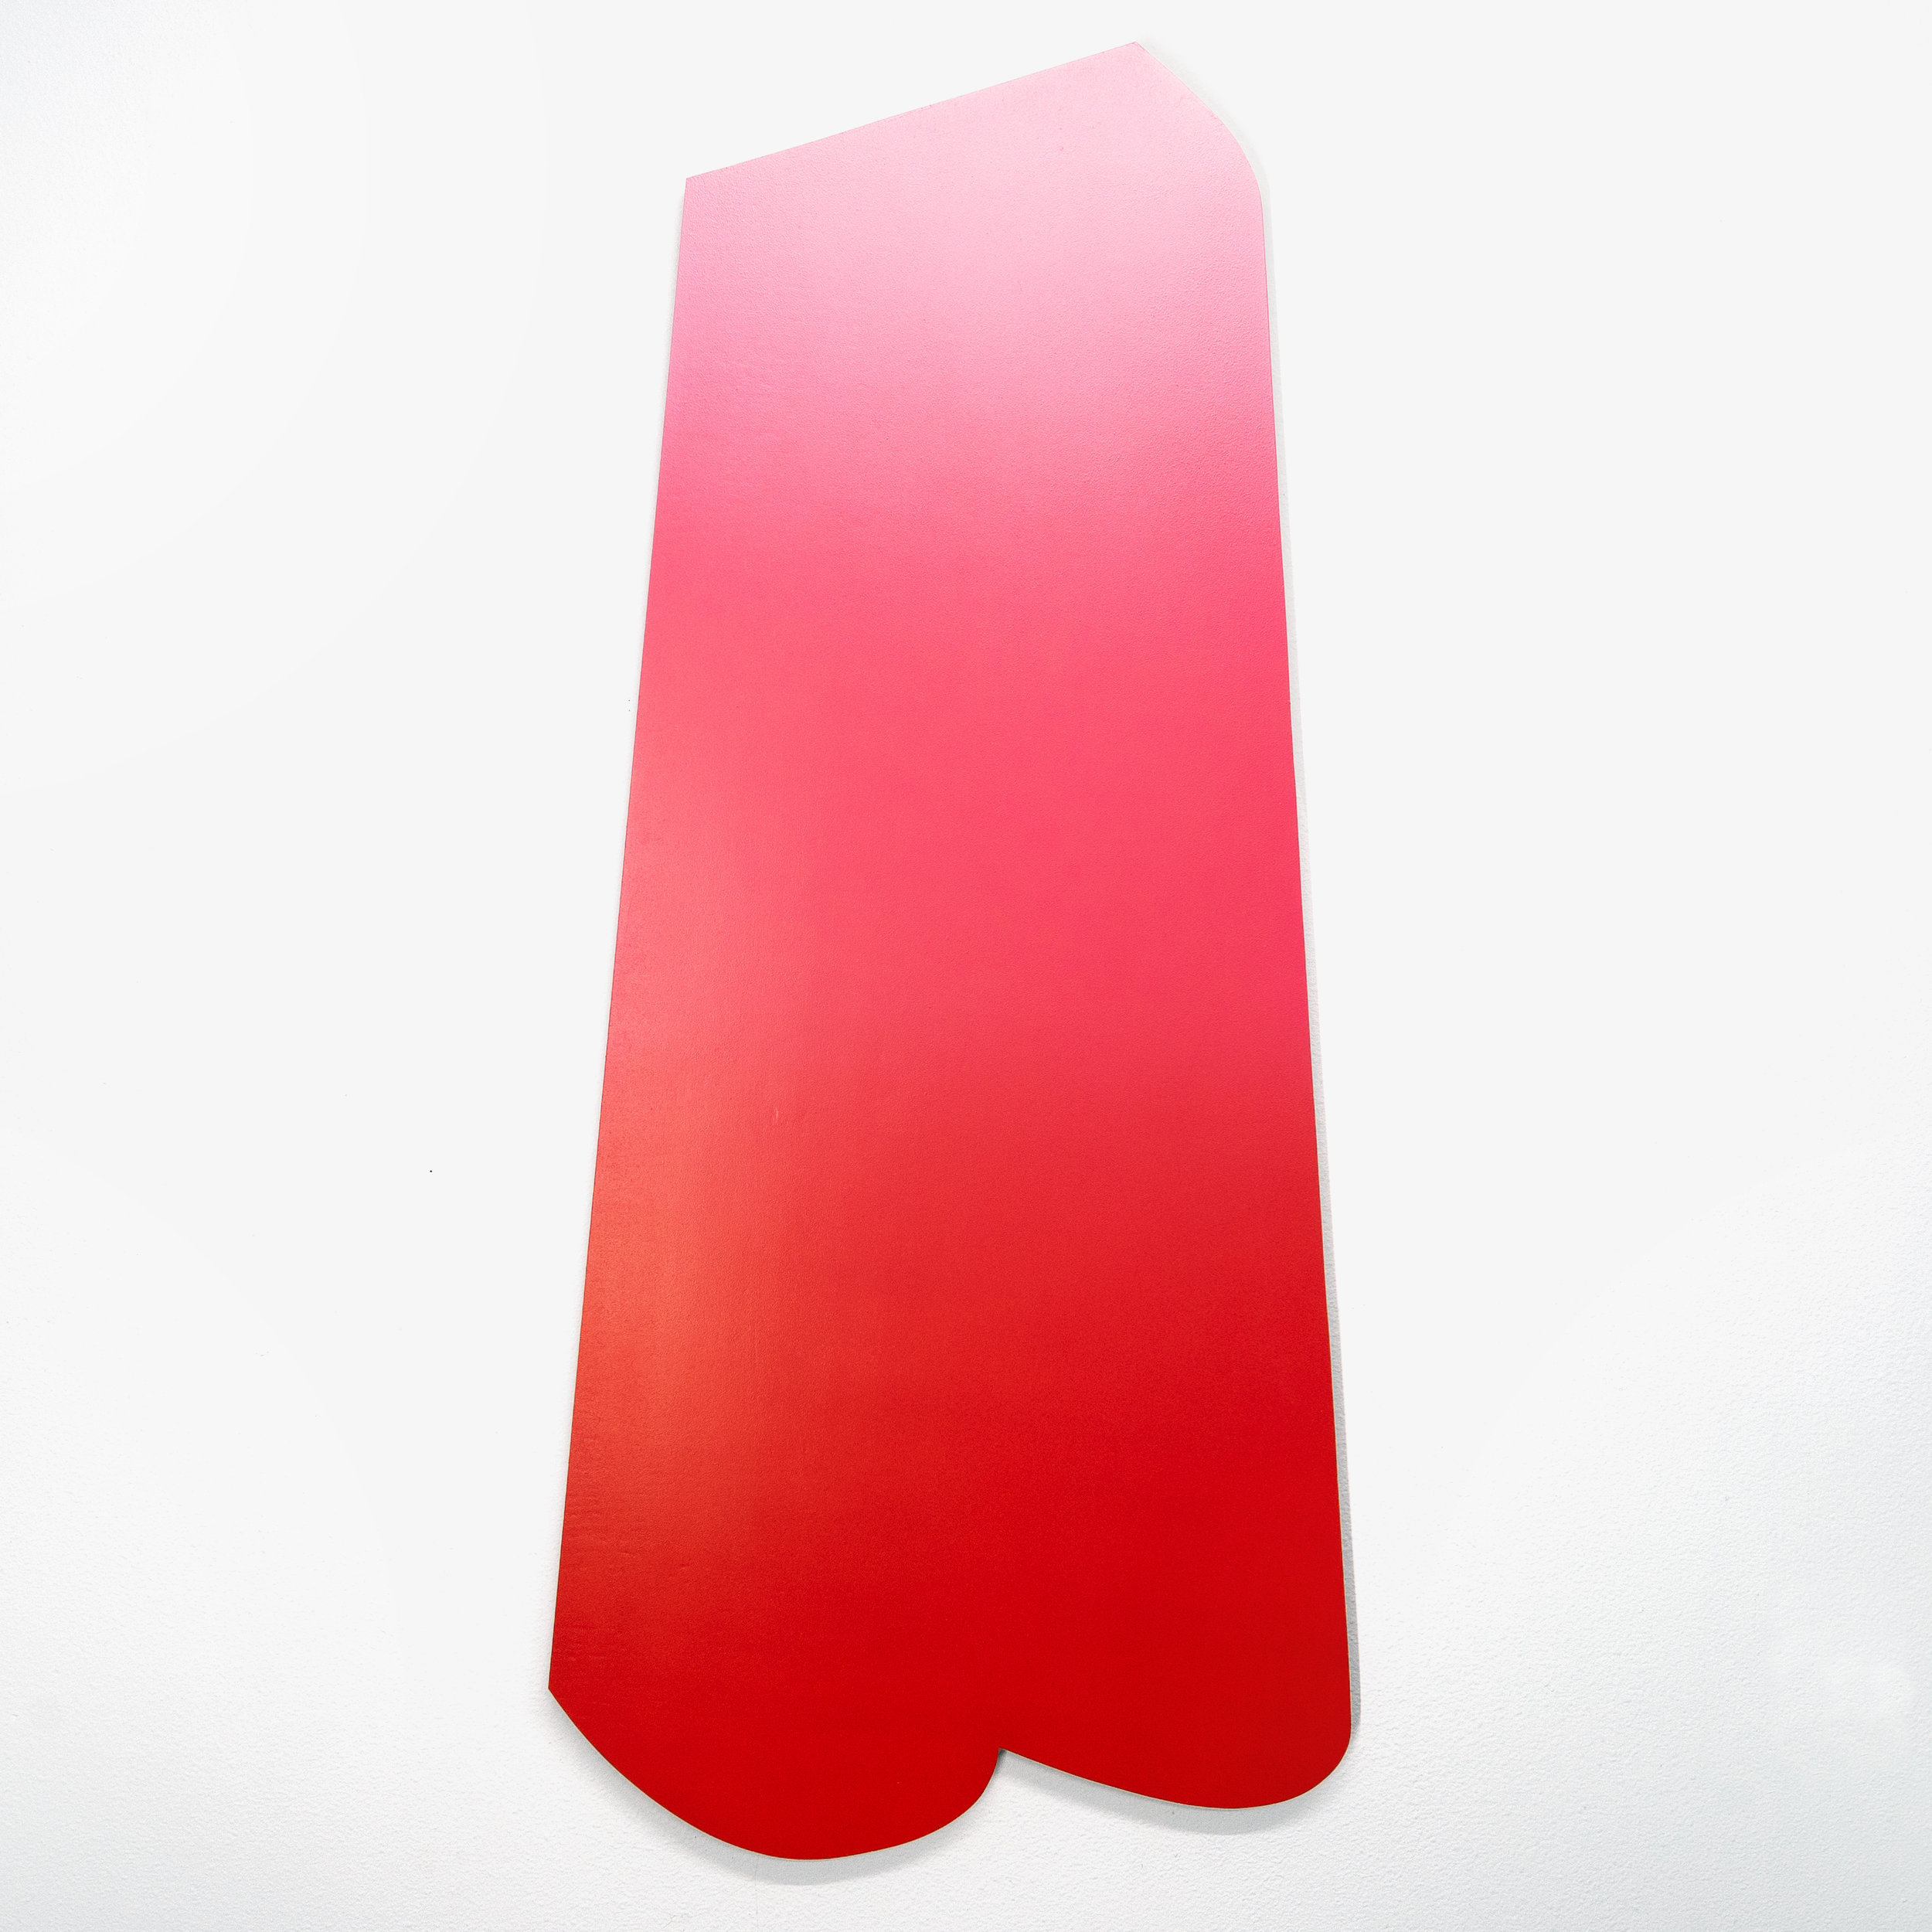 """Popsicle  2018. Airbrushed acrylic on plywood. 24""""w x 52""""h x 1d"""